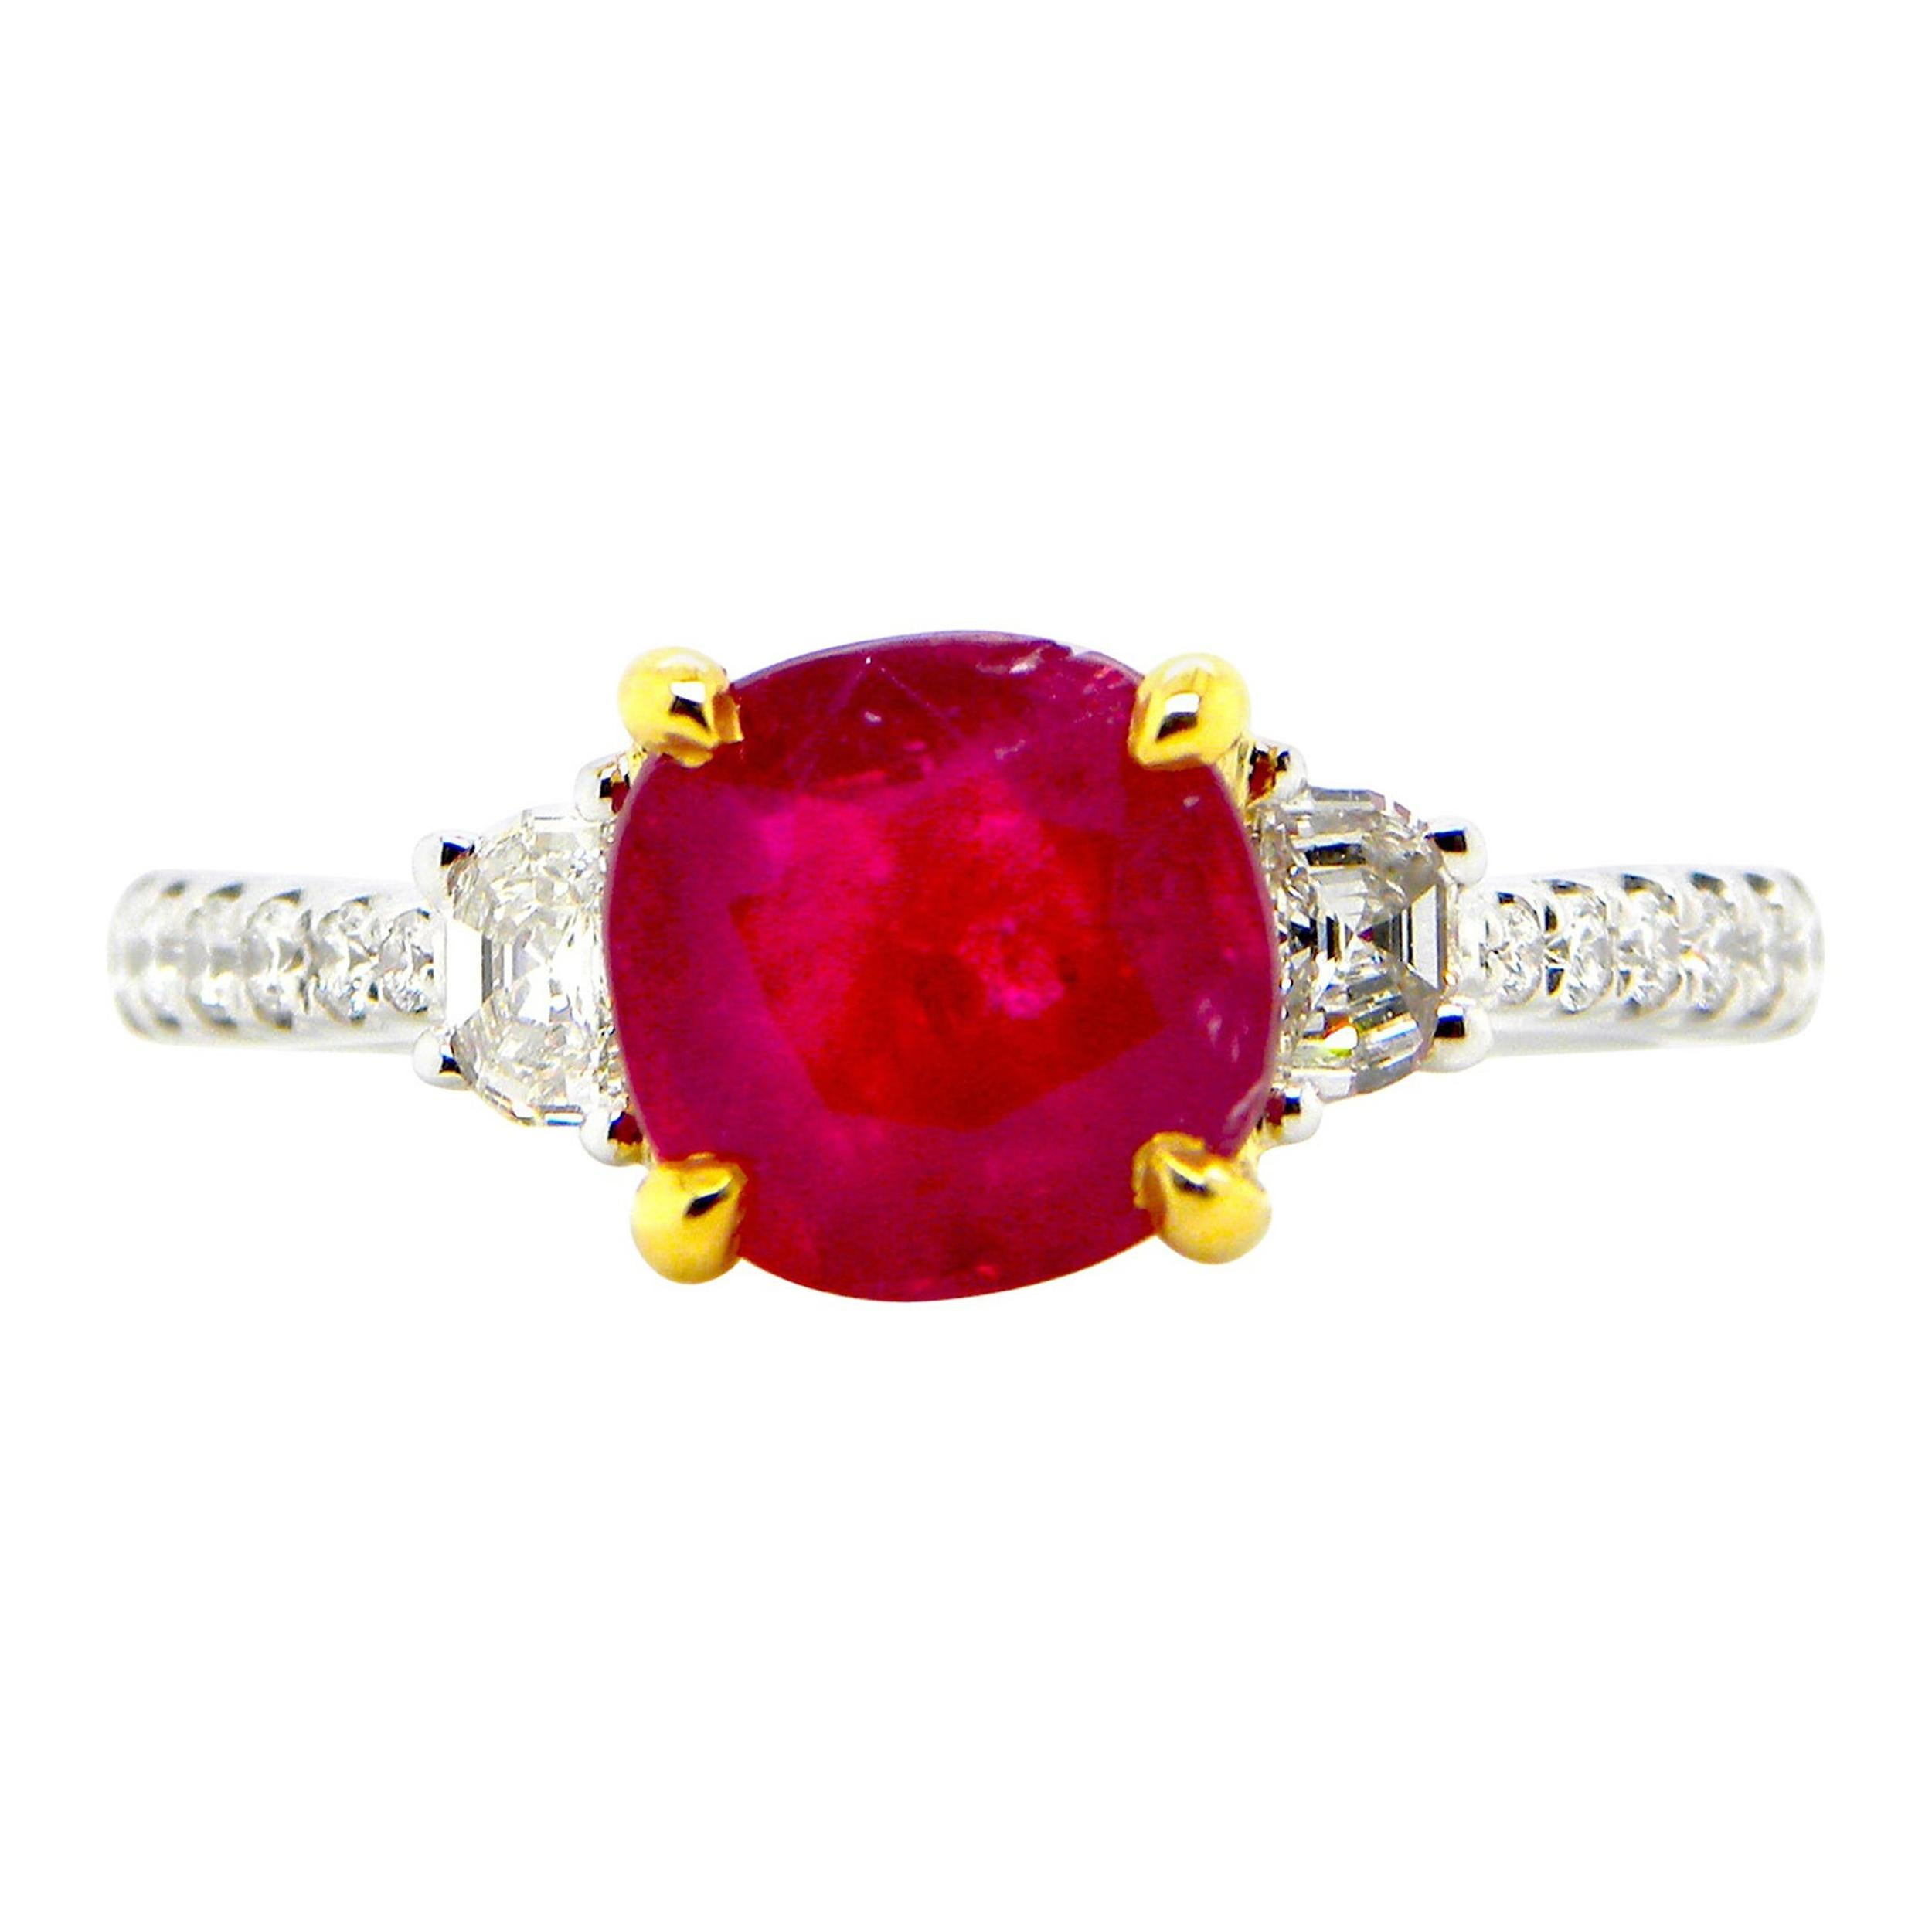 1.93 Carat GIA Certified Unheated Vivid Red Burmese Ruby and Diamond Gold Ring